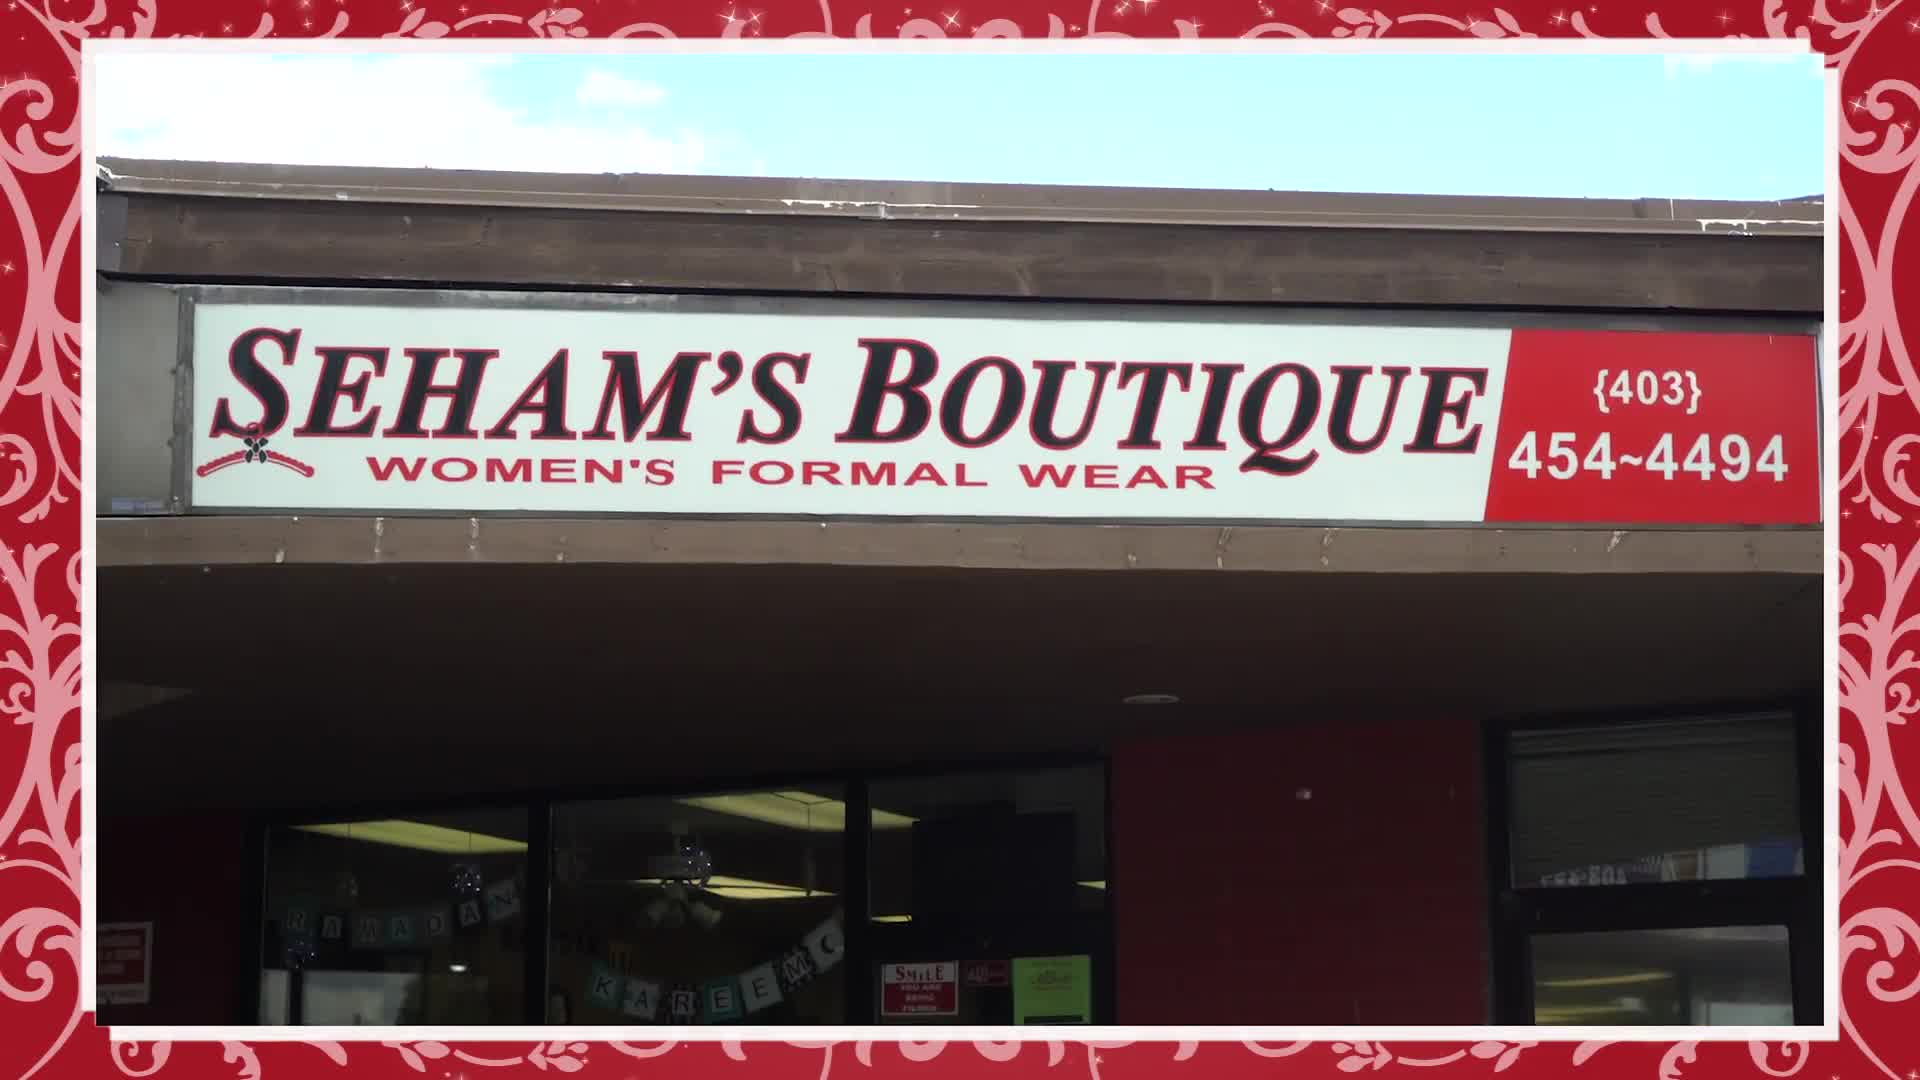 Seham's Boutique - Women's Clothing Stores - 403-454-4494